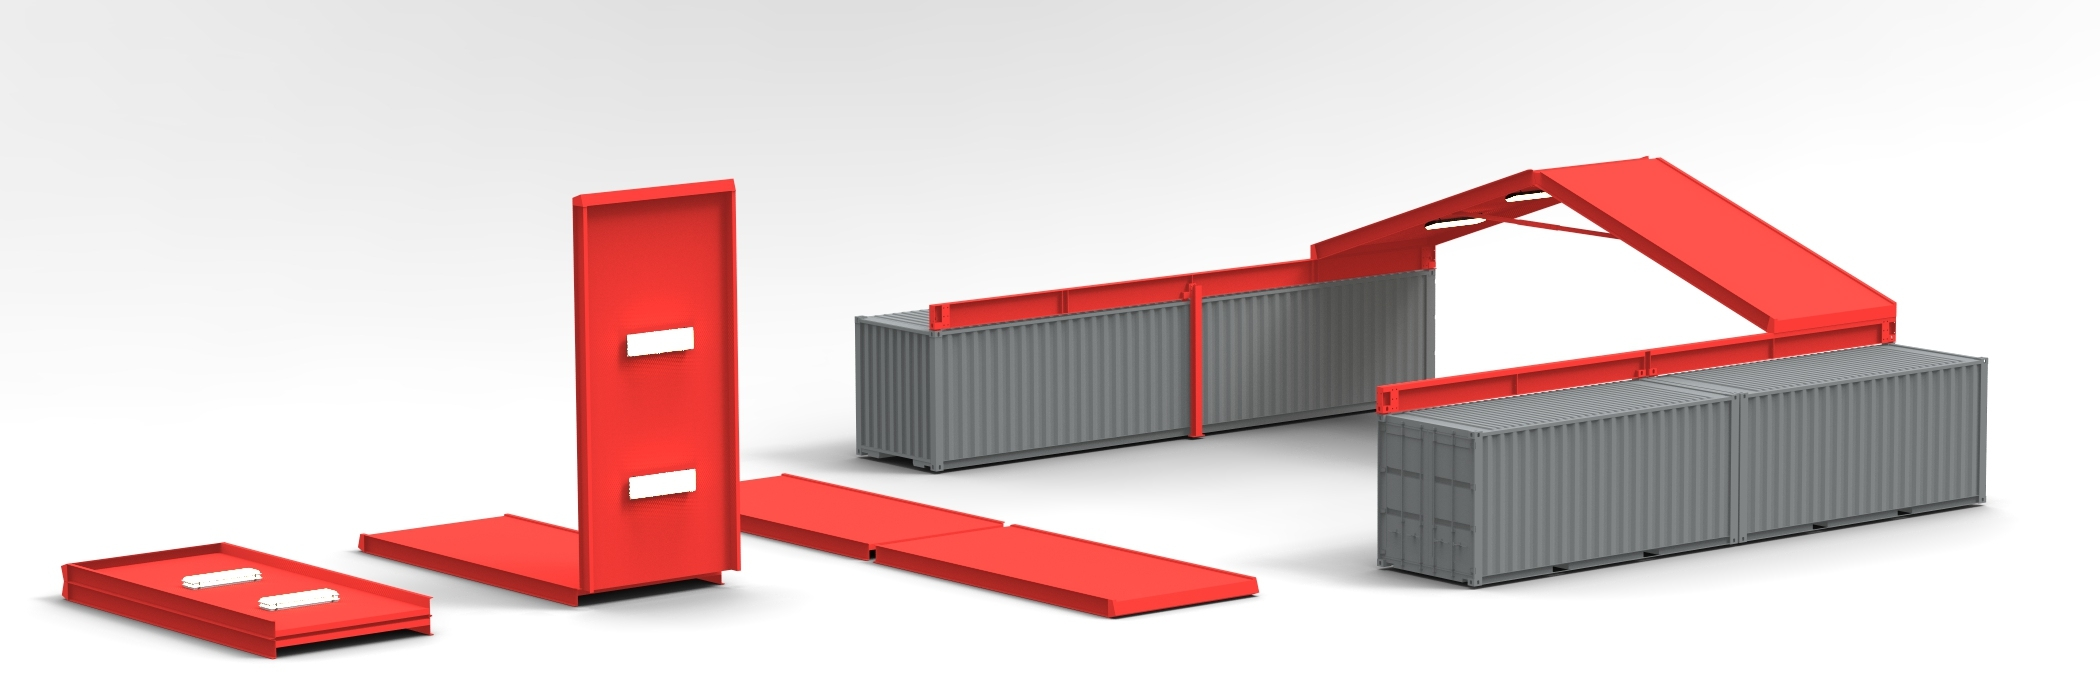 Standard ConTEMProof features Galvalume cladding with gray epoxy coated steel frames. Red shown for product emphasis. Color ConTEMProof available upon request.